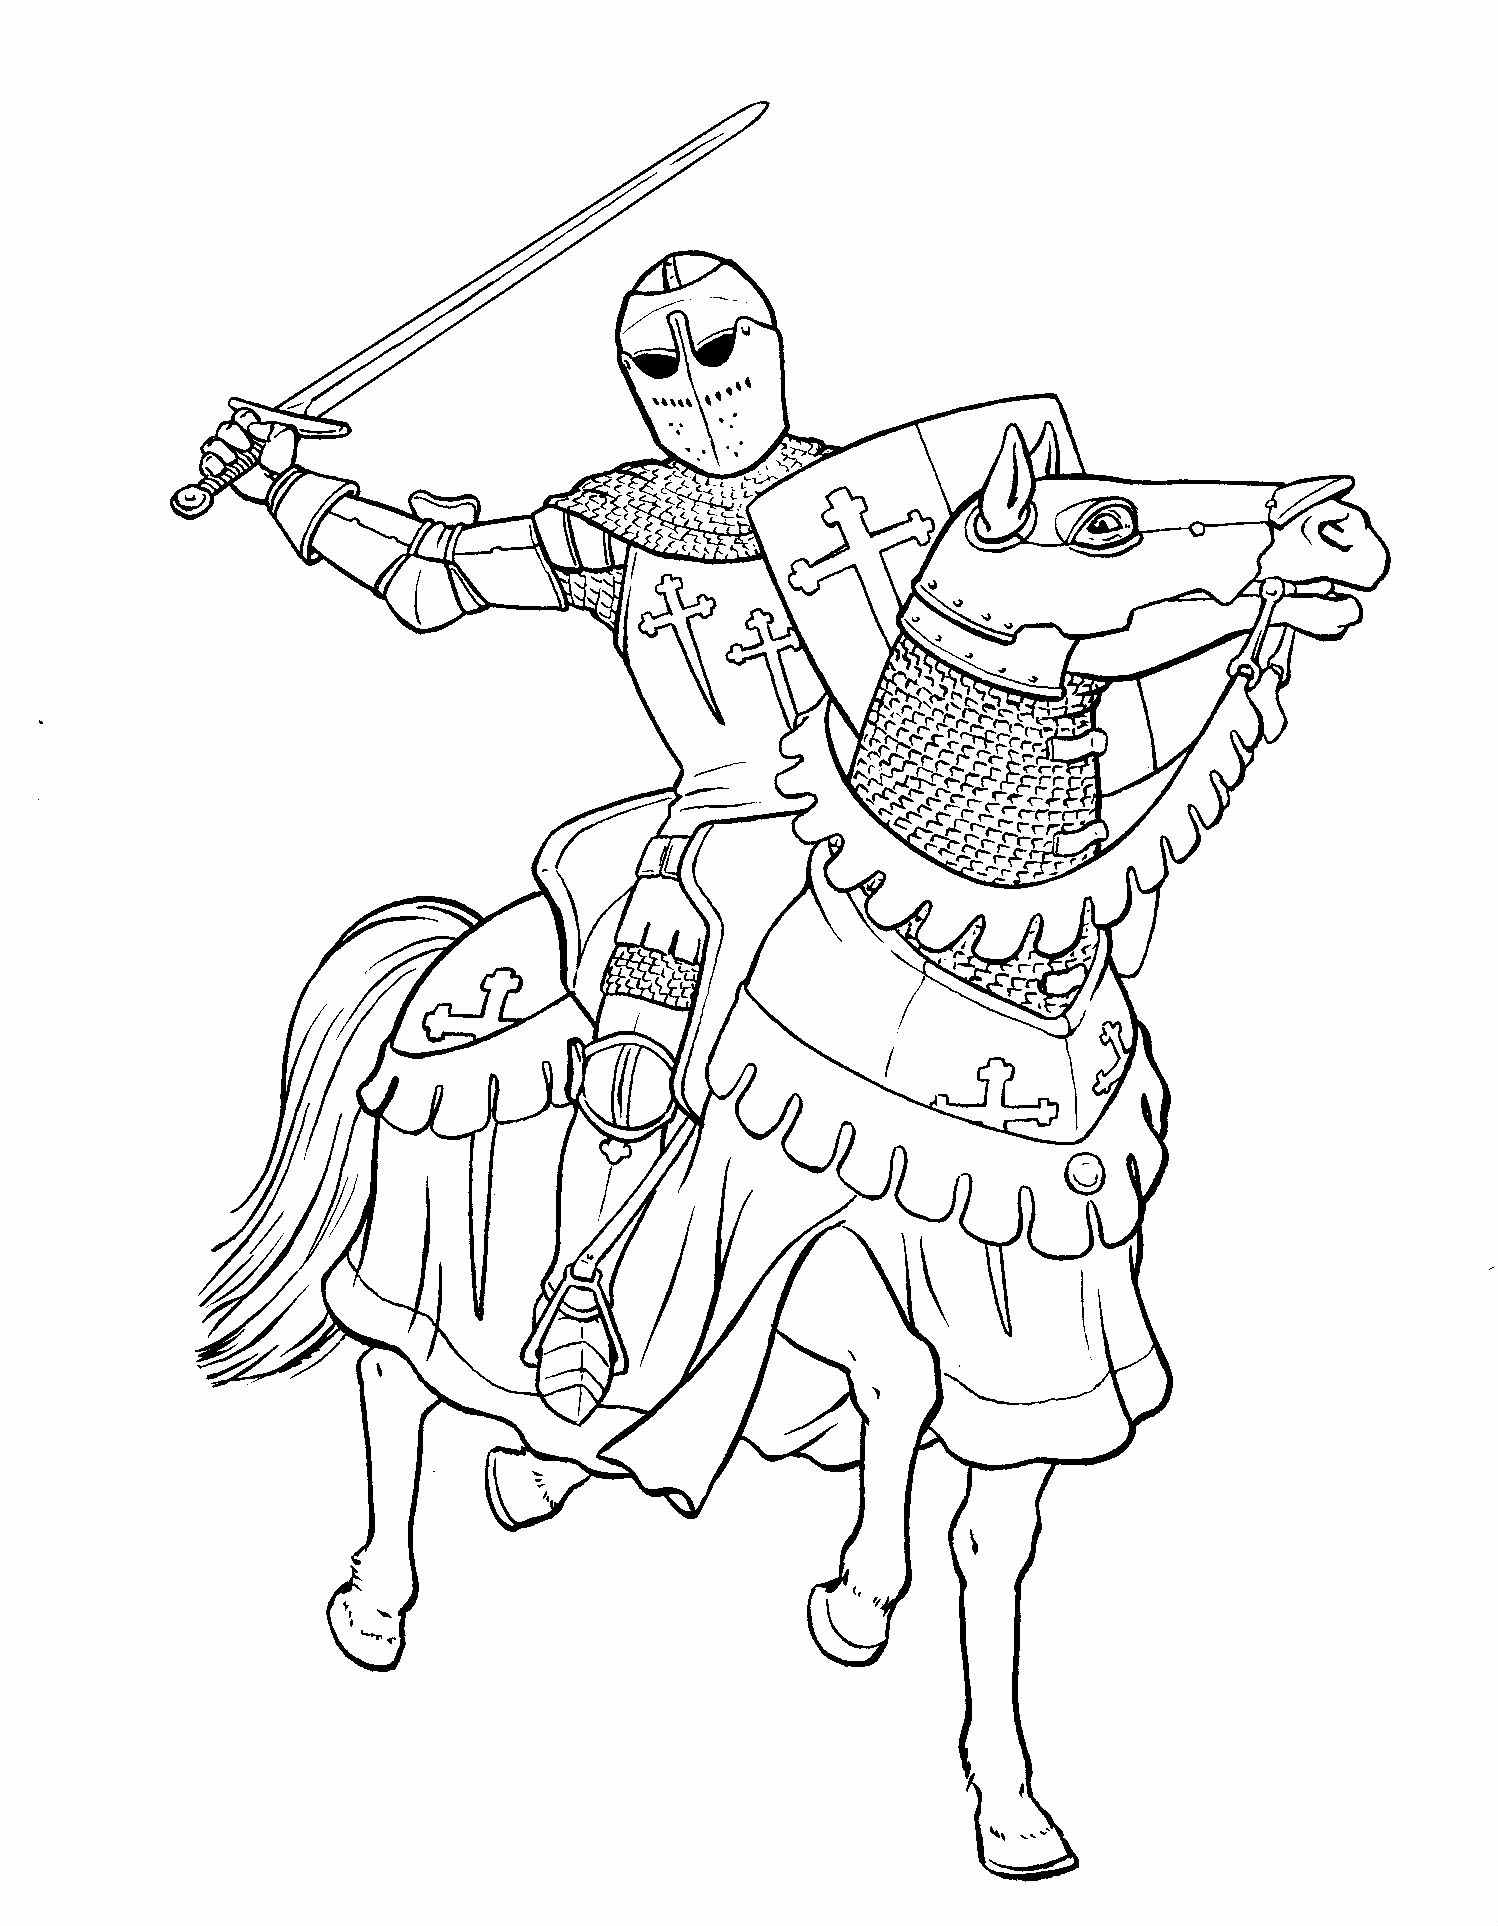 knight coloring pages for kids - photo#23